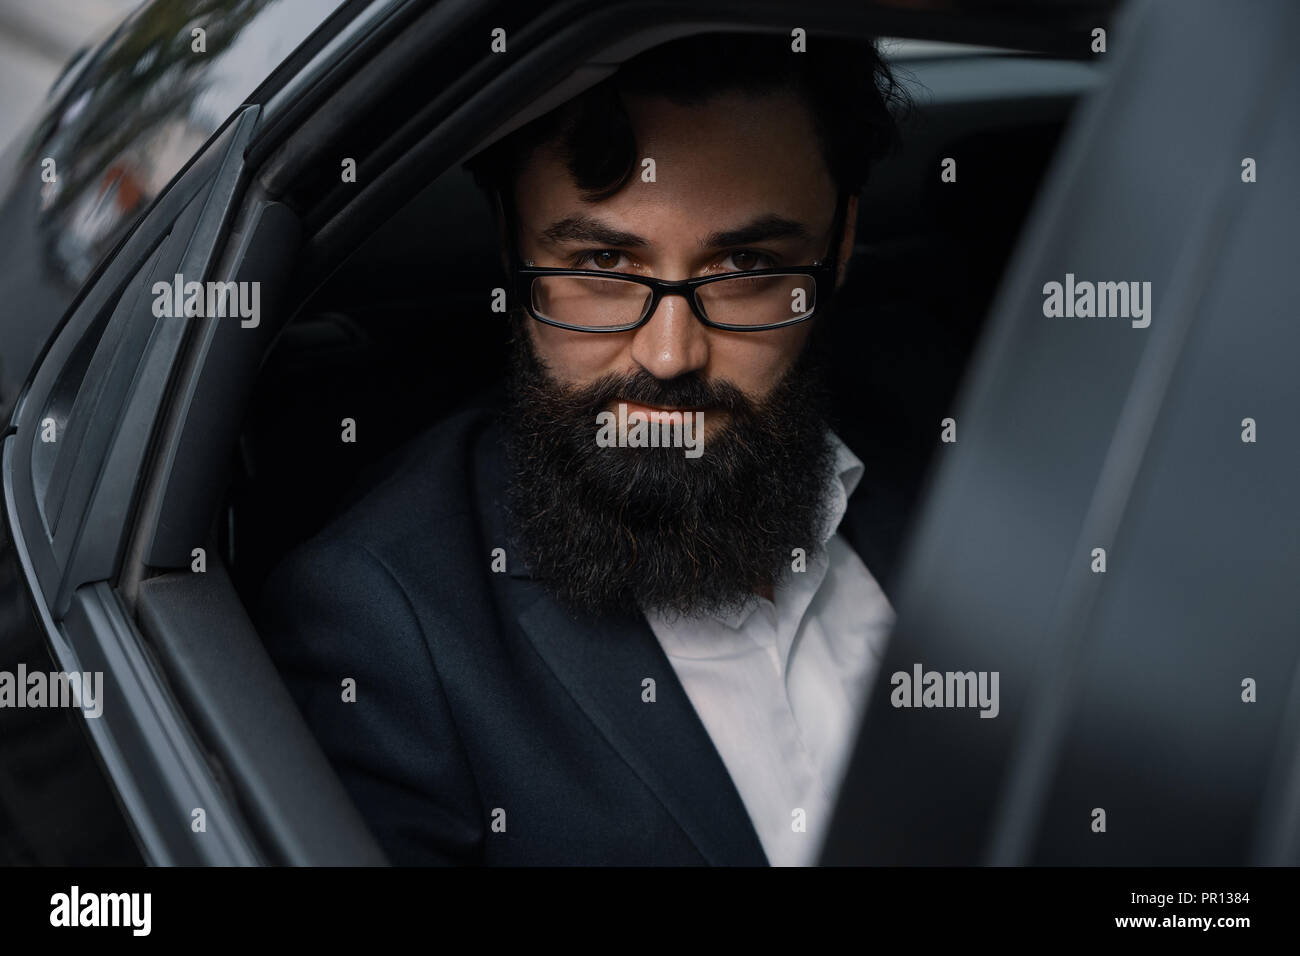 Attractive young businessman in a car looking determined to camera. - Stock Image